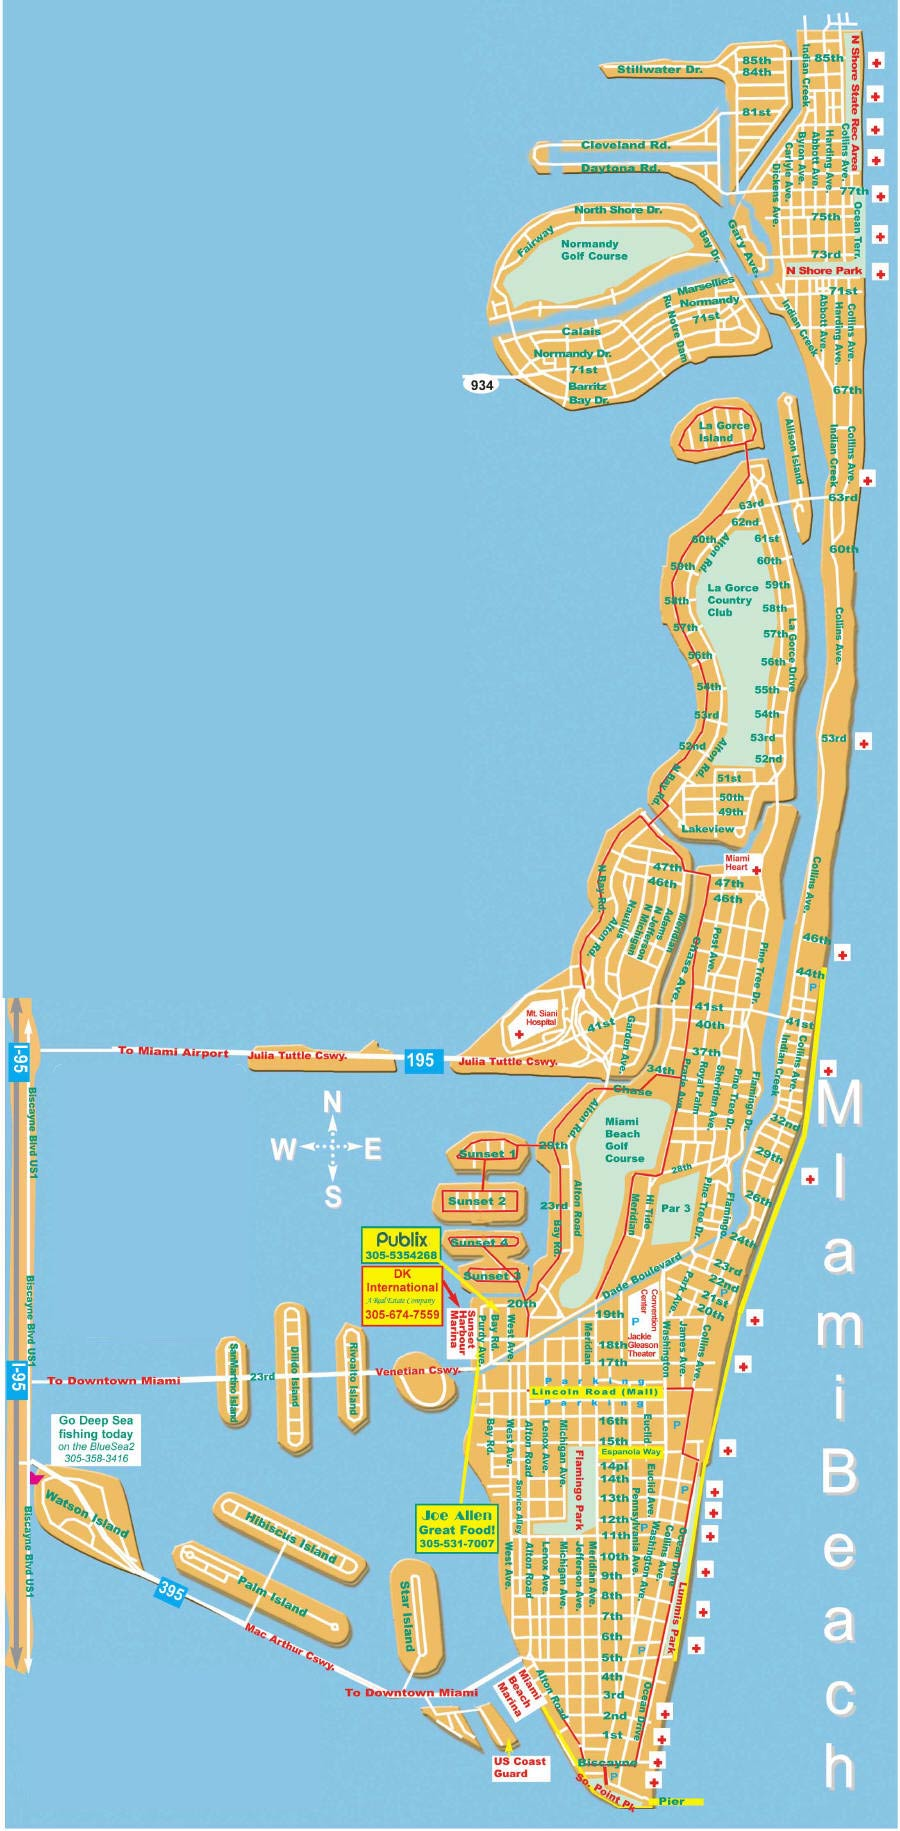 Miami Beach Tourist Map Miami Beach mappery – Miami Tourist Map